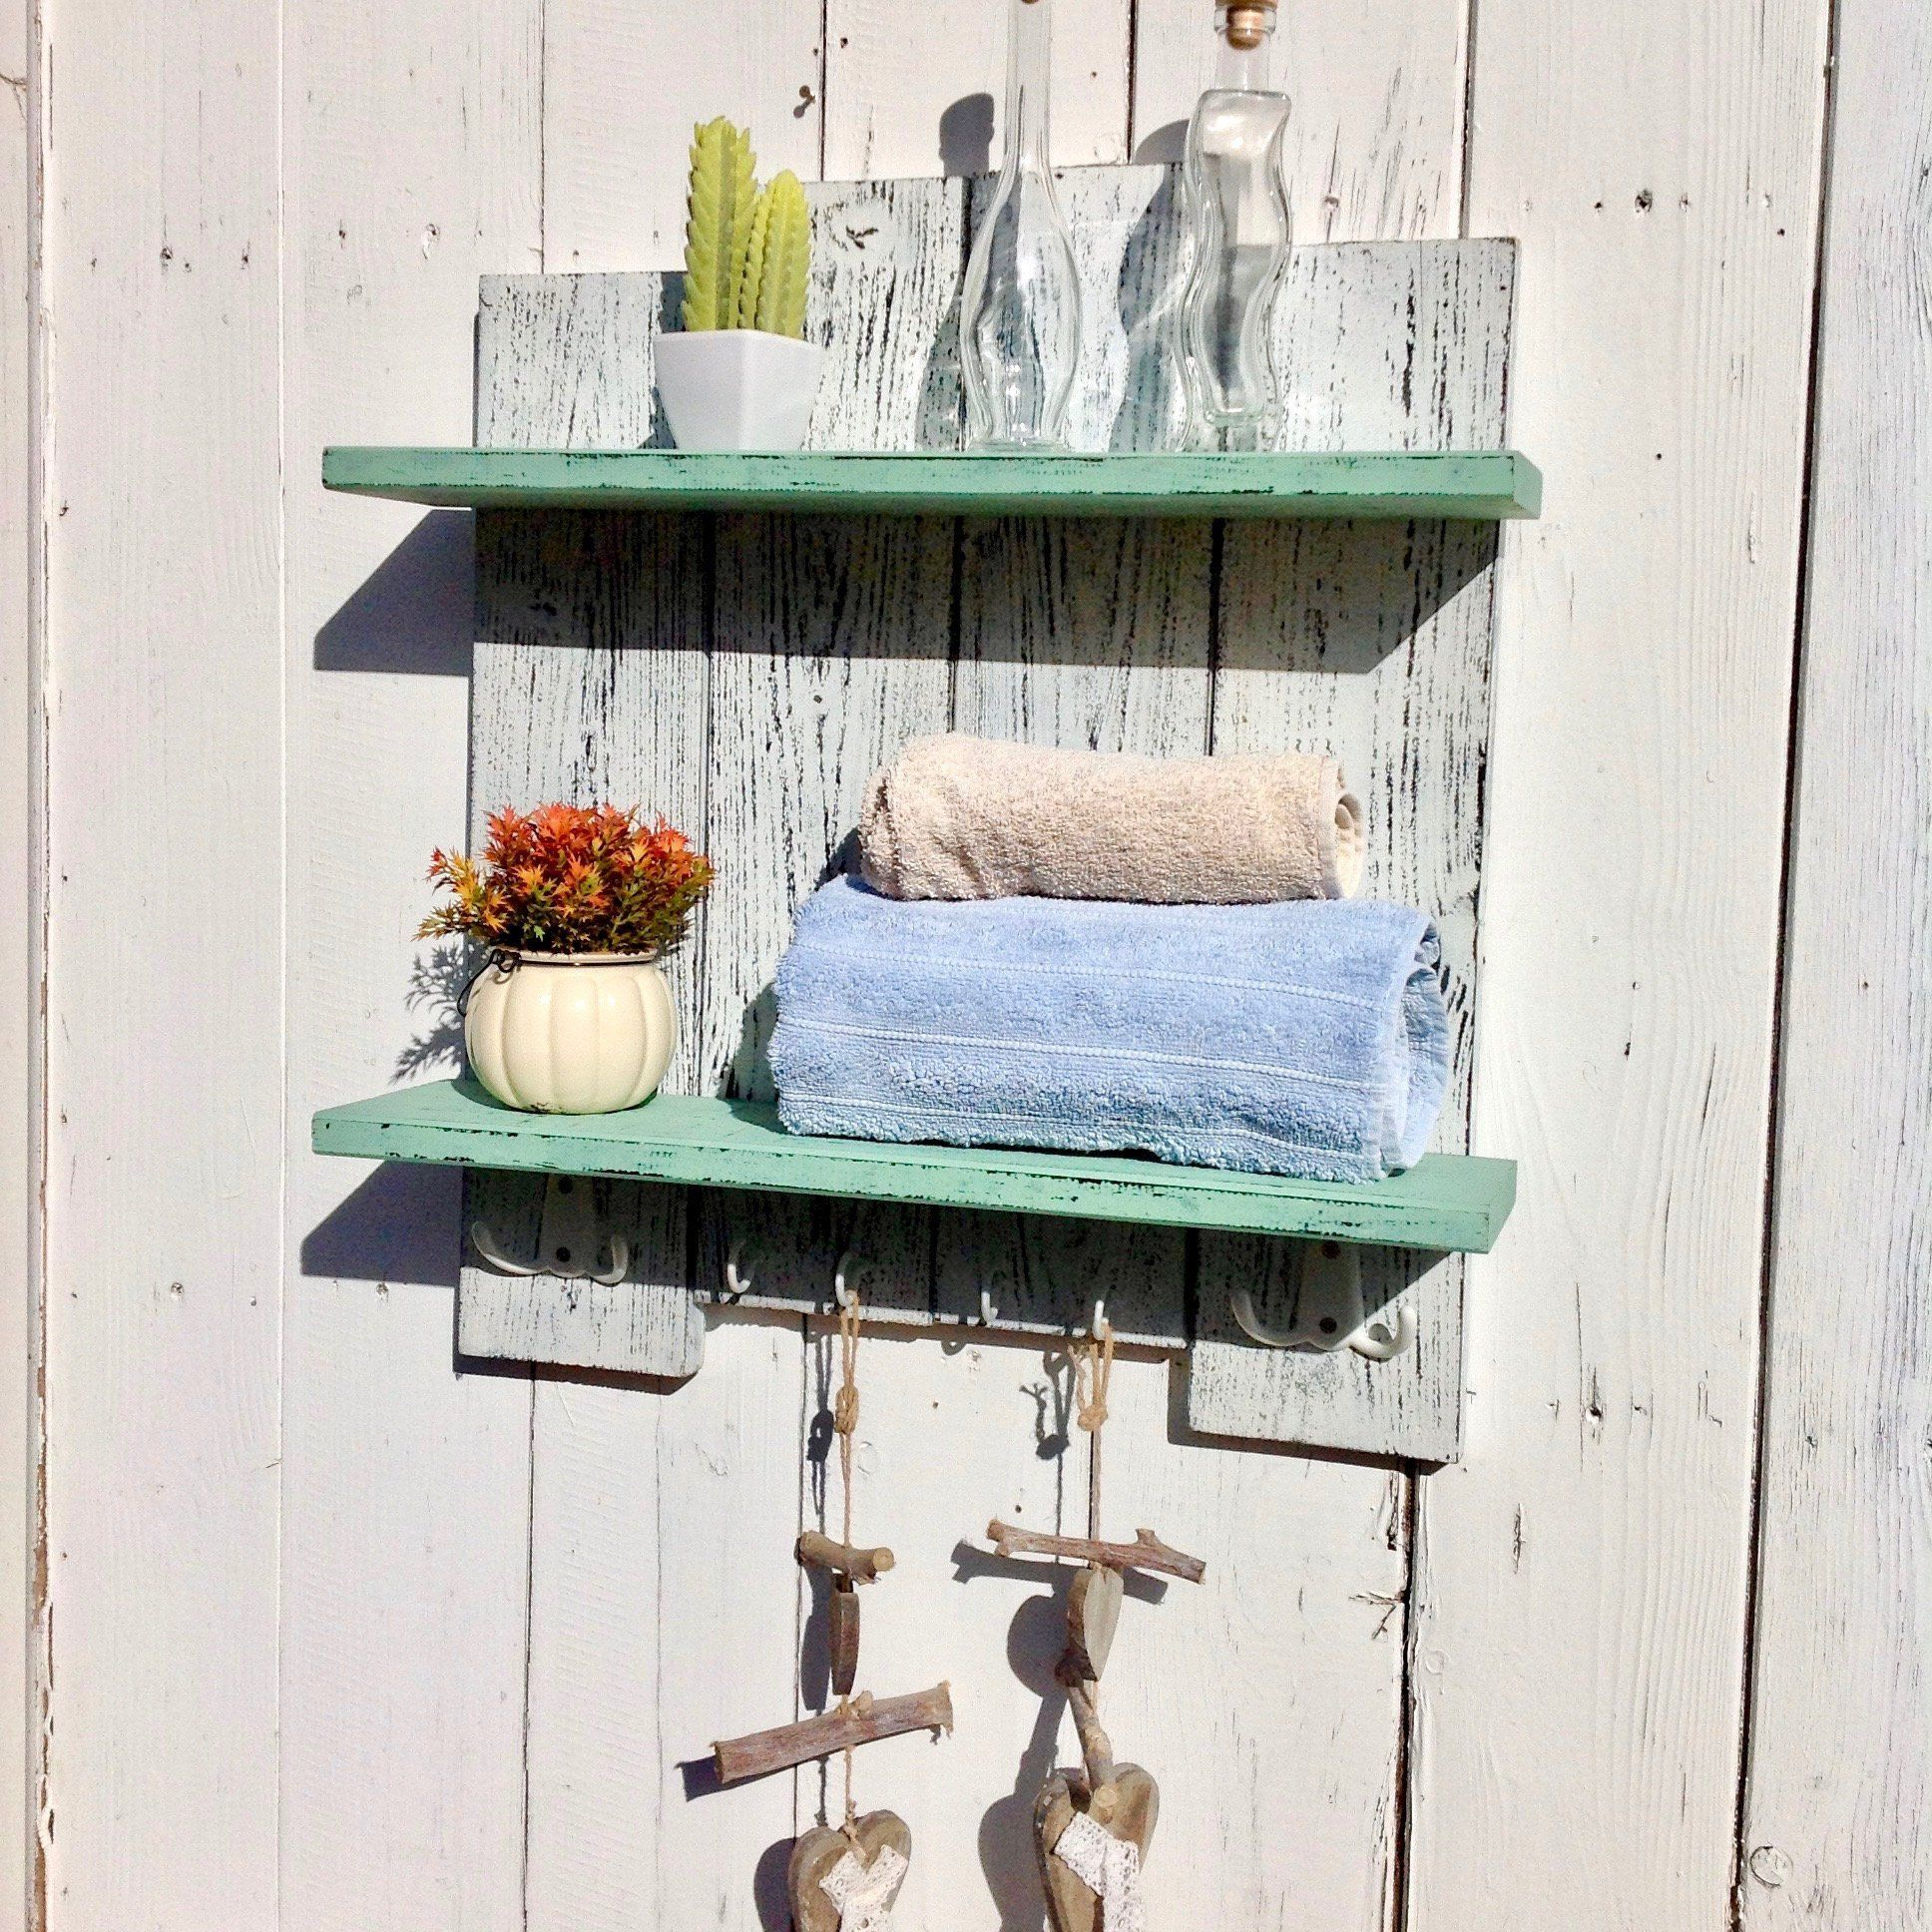 Bathroom Rustic Wooden Shelf Hook Unit Shelves This Rustic White Wall Shelves With Hooks Is An Ideal Way To White Wall Shelves Shelves White Bathroom Shelves